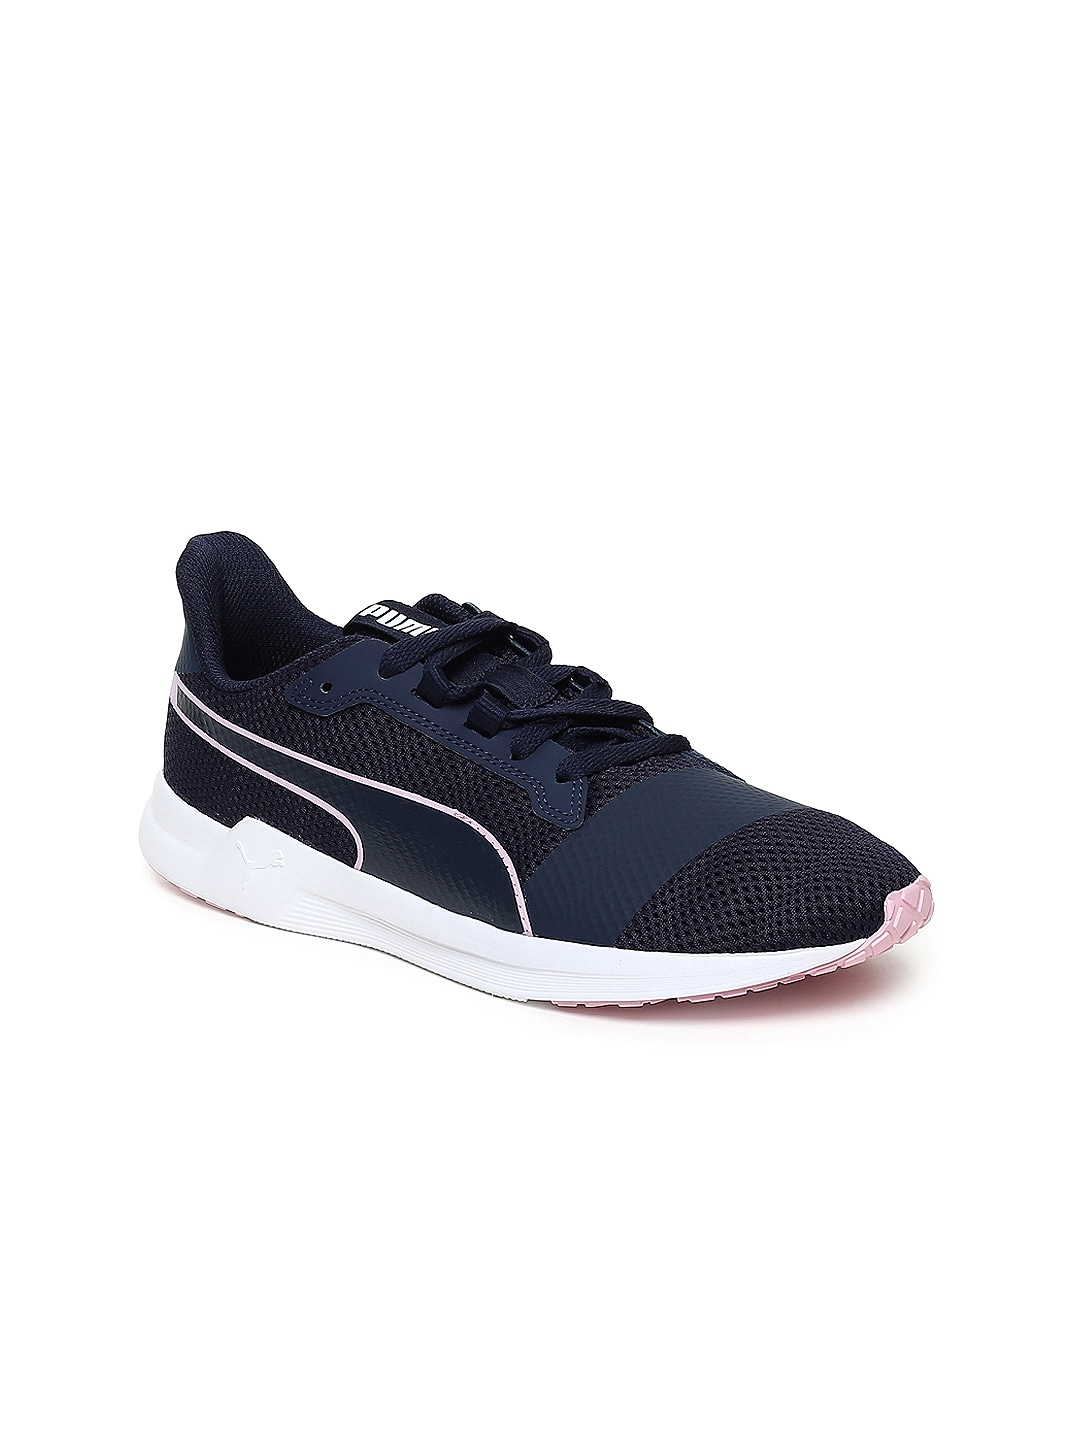 a0af9fda2e1 Sports Shoes for Women - Buy Women Sports Shoes Online